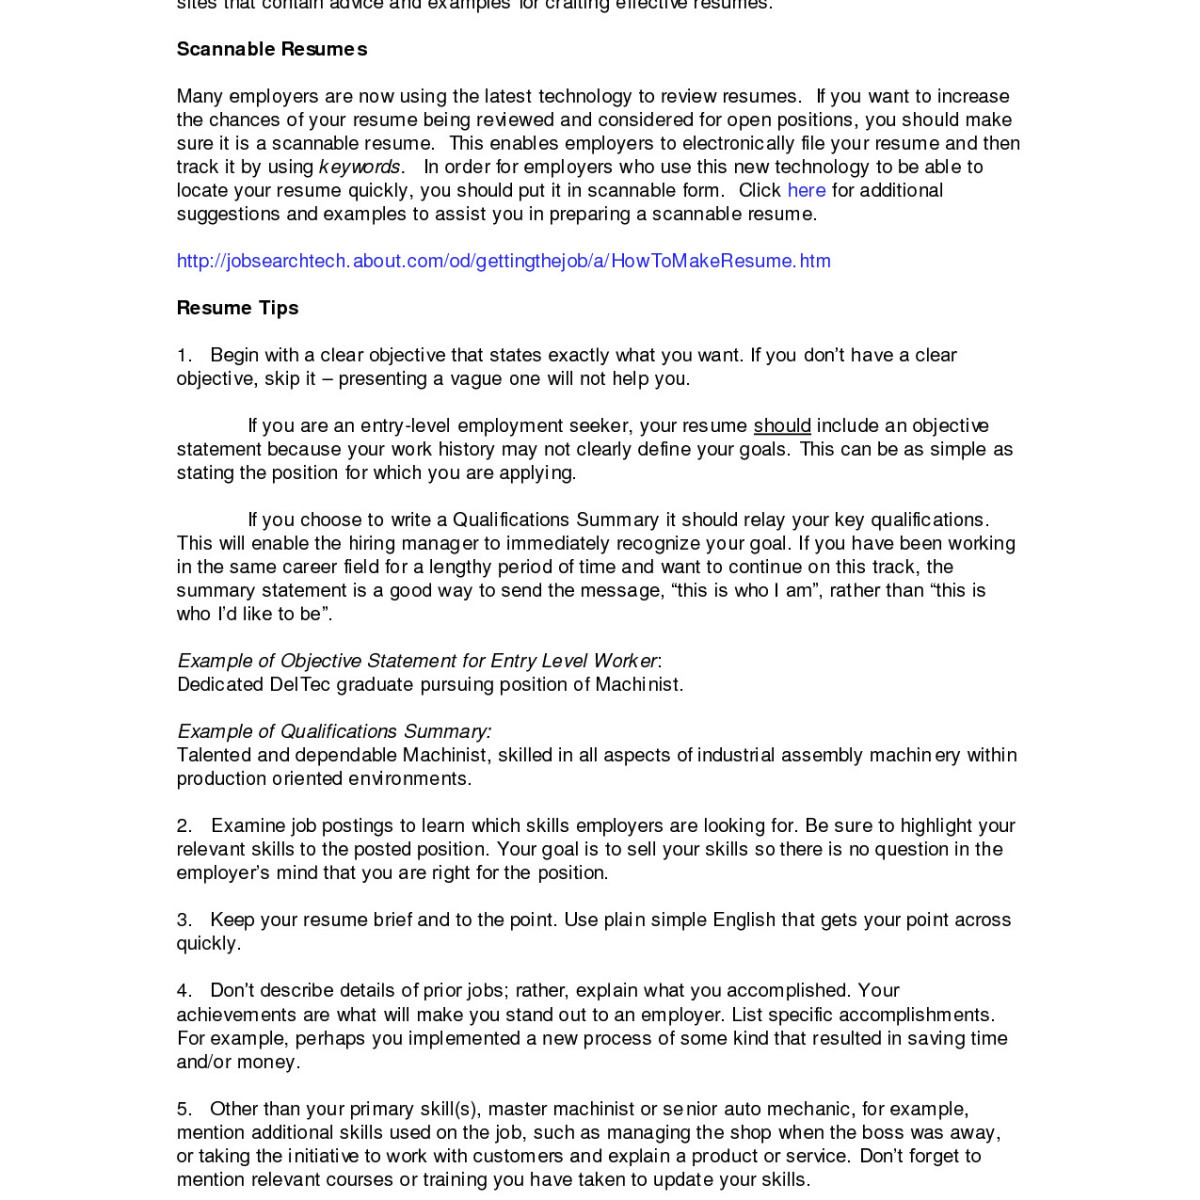 Words that Employers Look for In Resumes - Resume Words for Customer Service Lovely Resume Words for Customer